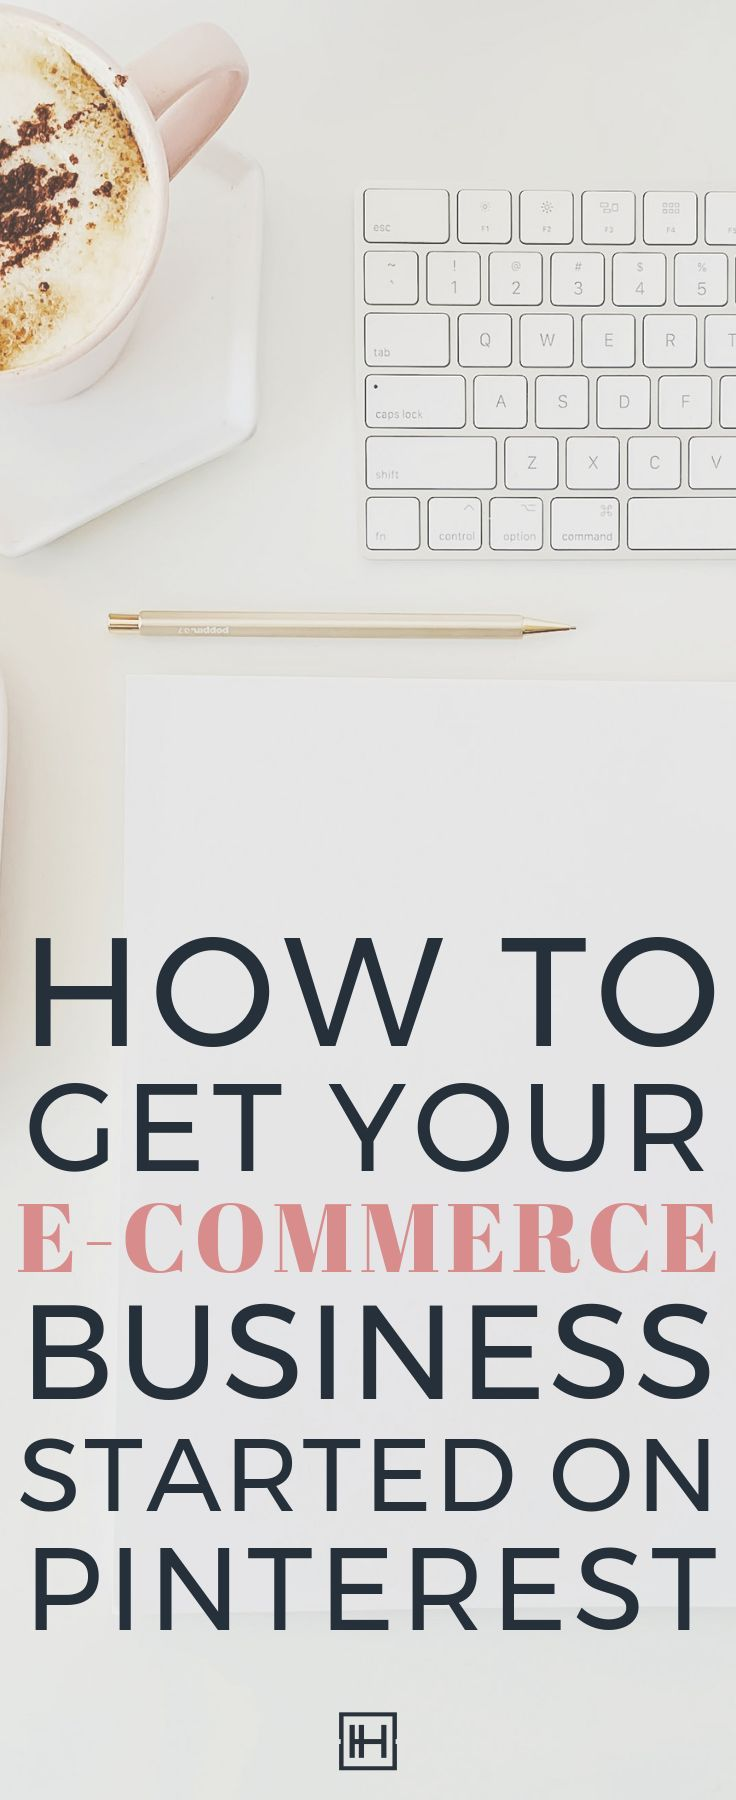 How to Get Your ECommerce Business Started on Pinterest is part of Starting a business, E commerce business, Ecommerce marketing, Social media marketing tools, Product based business, Marketing articles - If you're a product based business you need to be using Pinterest! Here's how to get started!